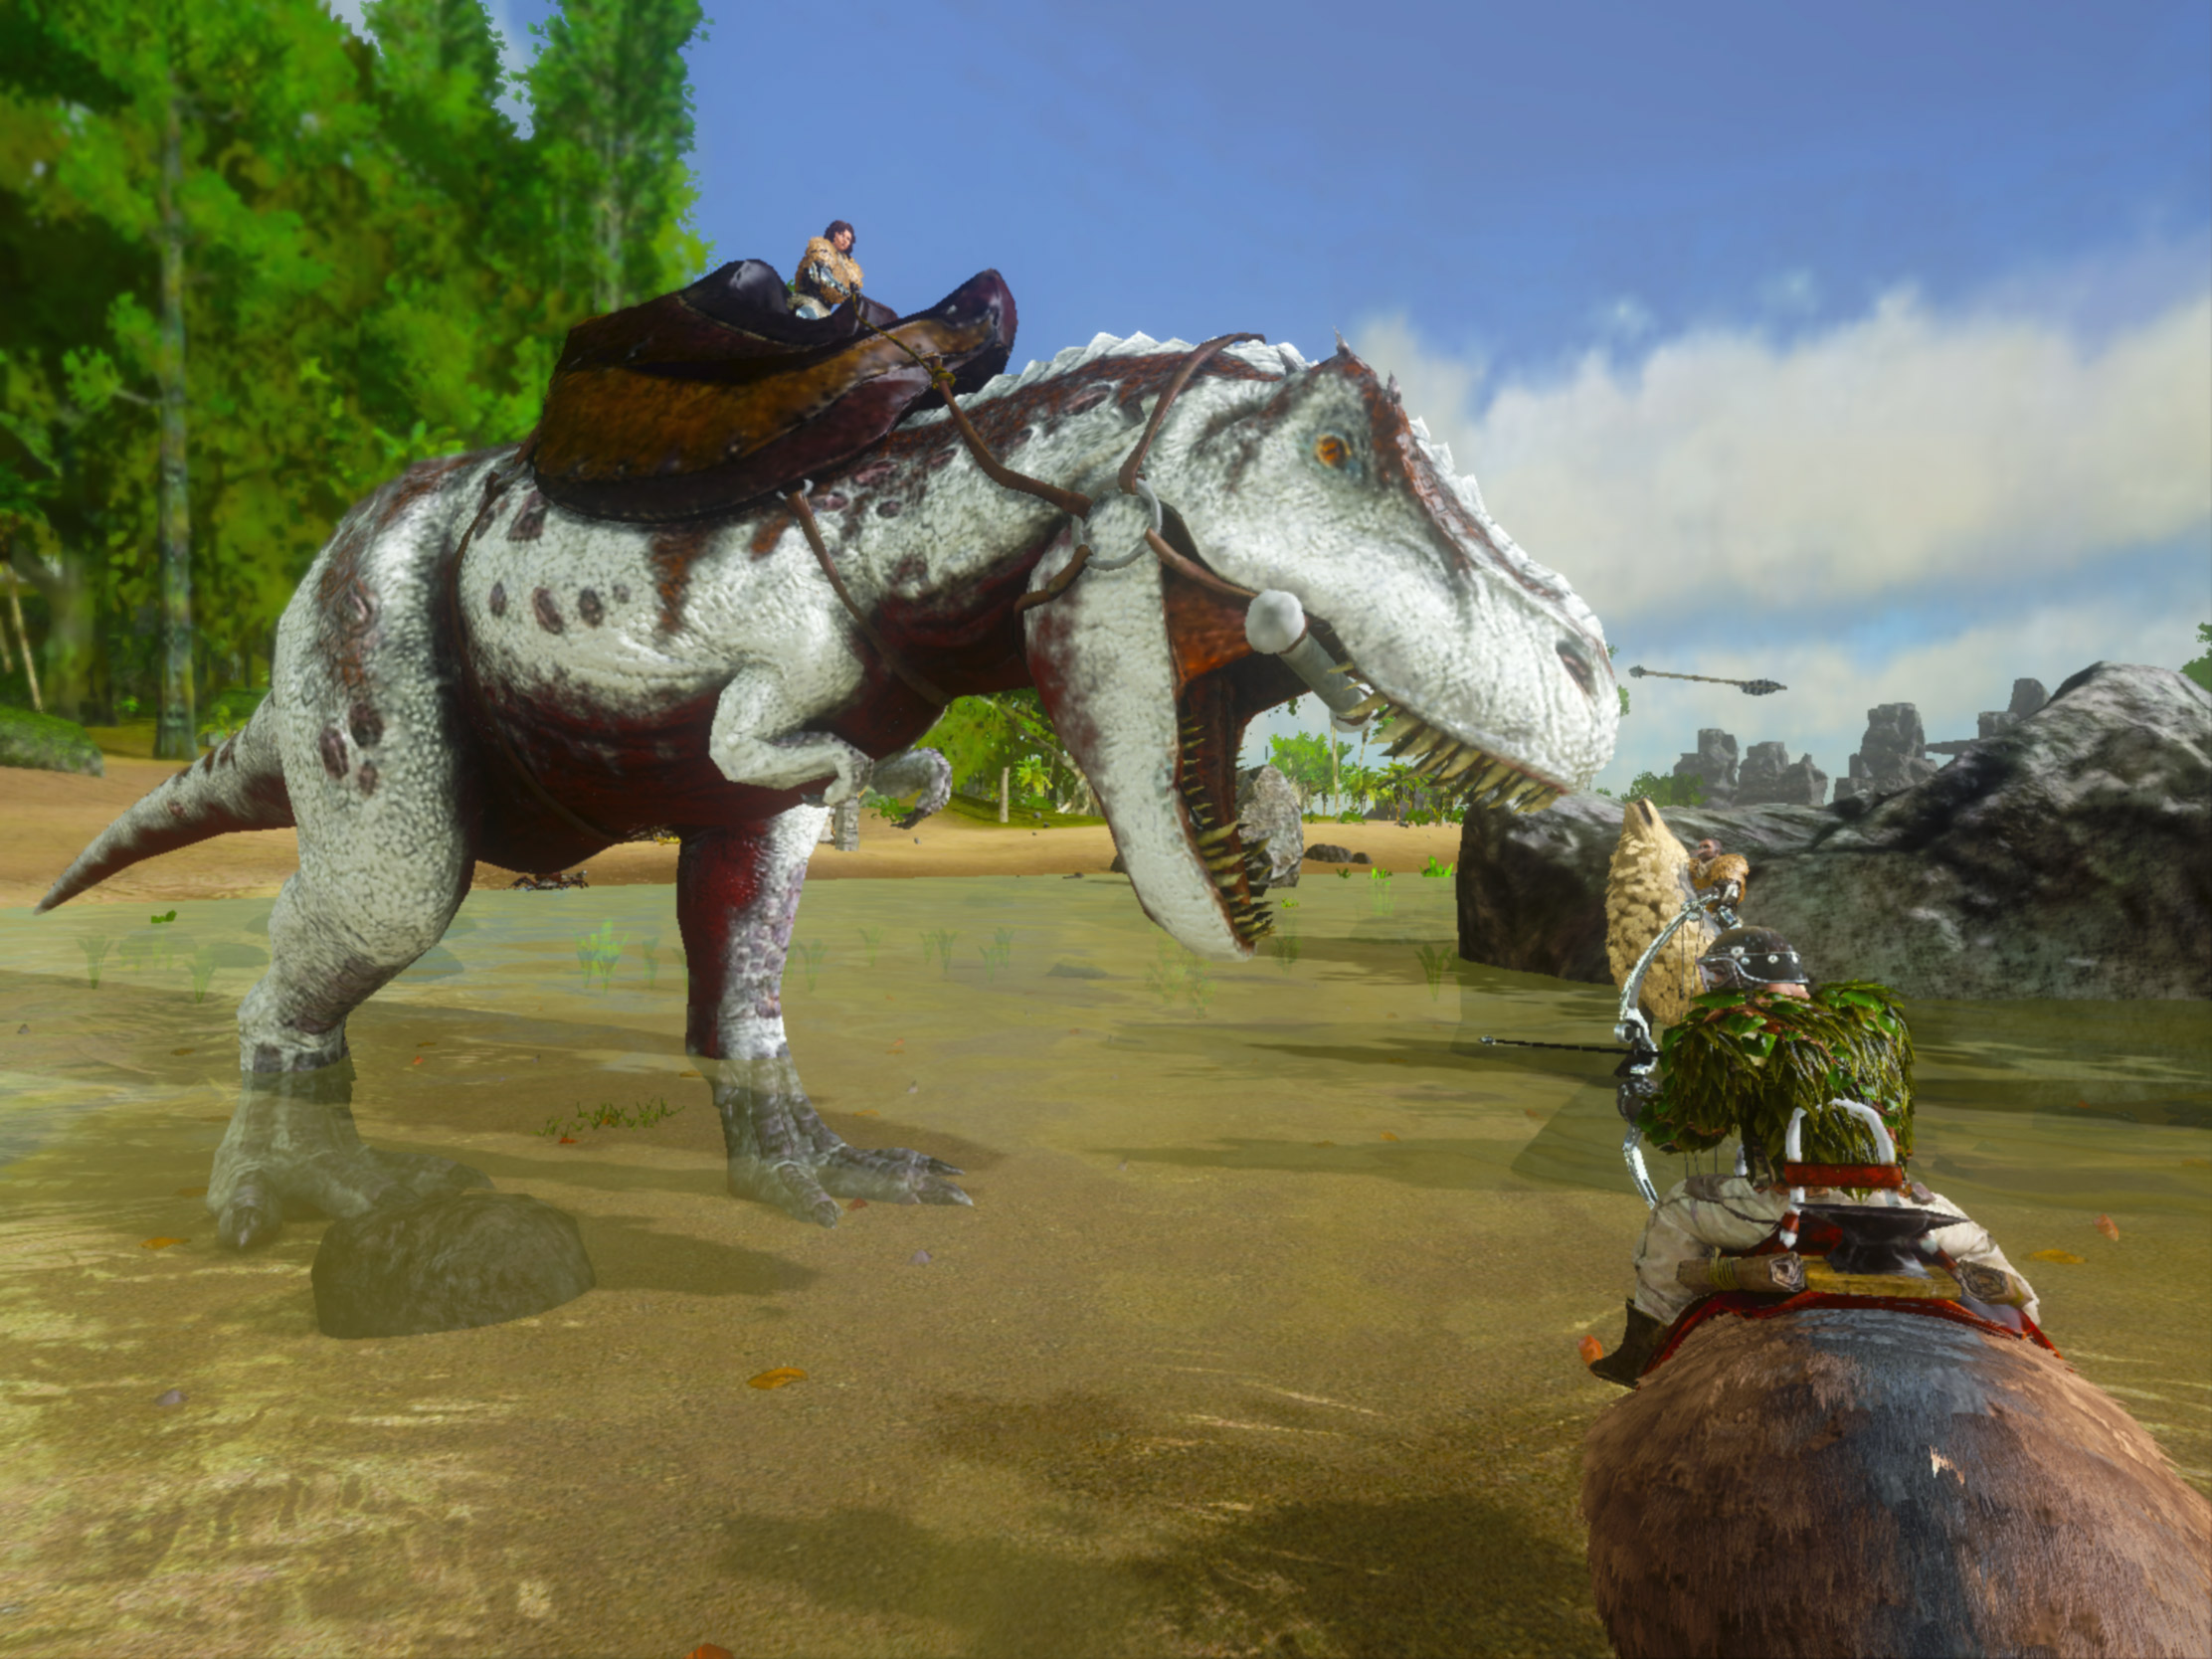 activation key for ark survival evolved pc